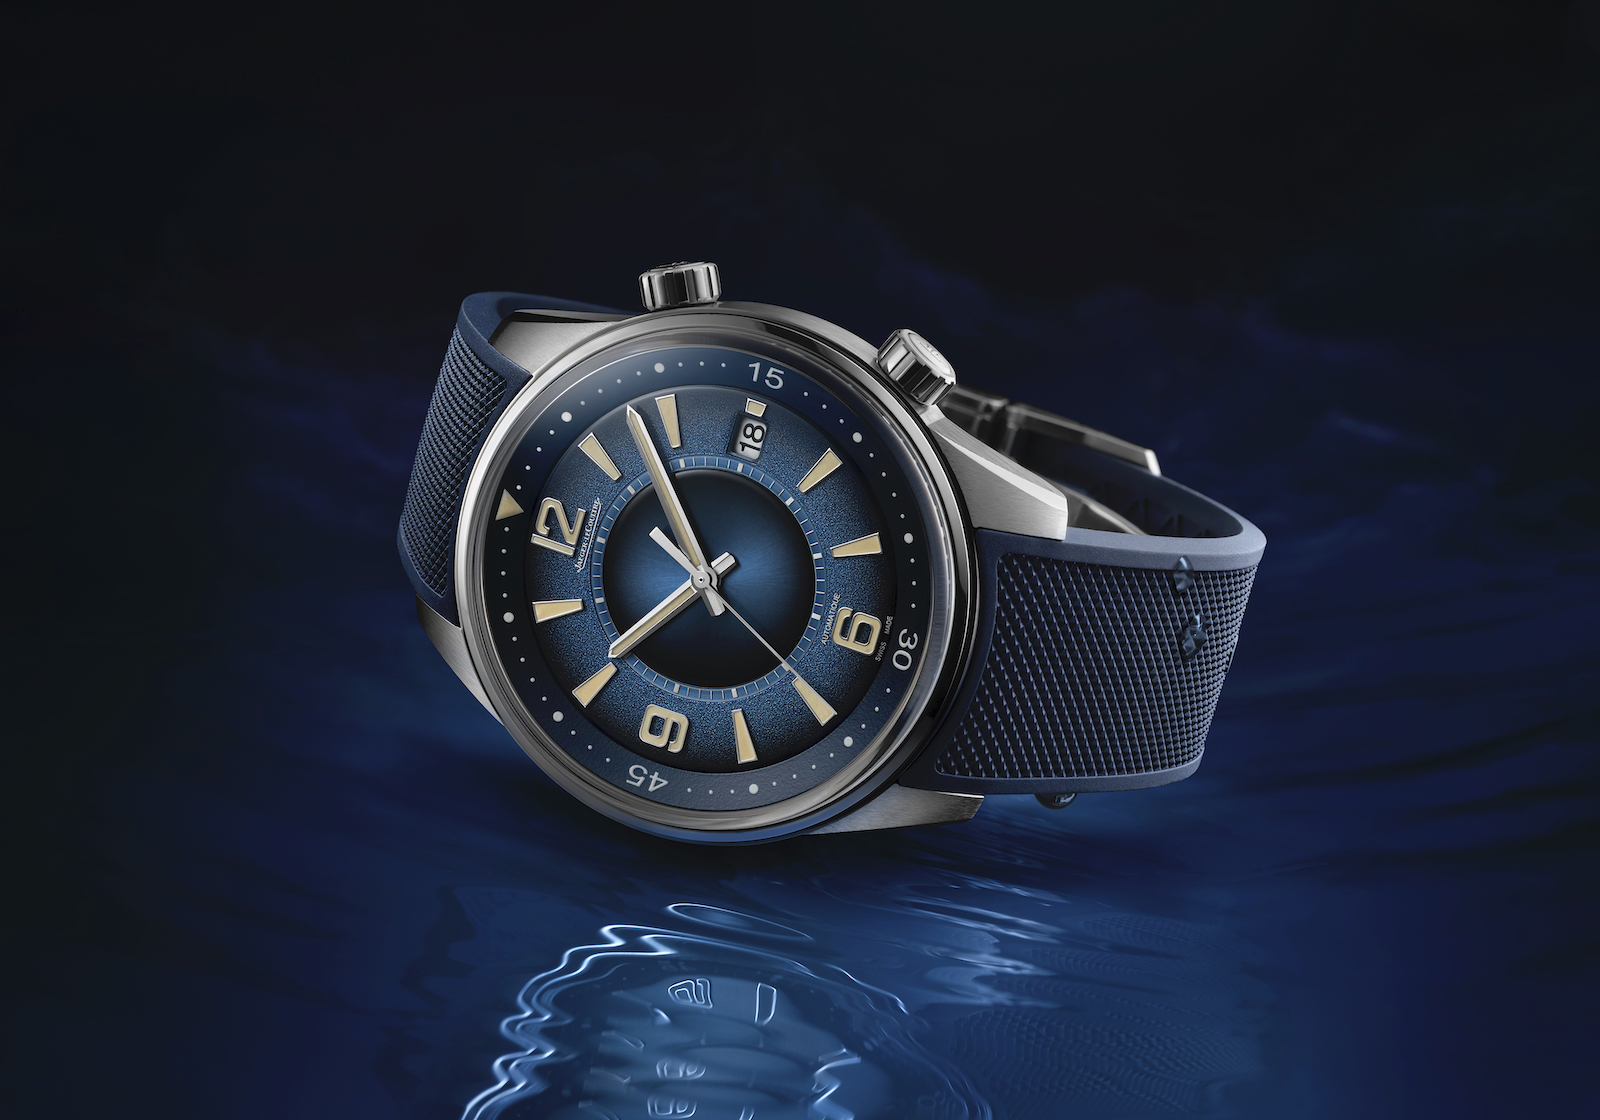 Jaeger-LeCoultre Polaris Date Limited Edition - 182983